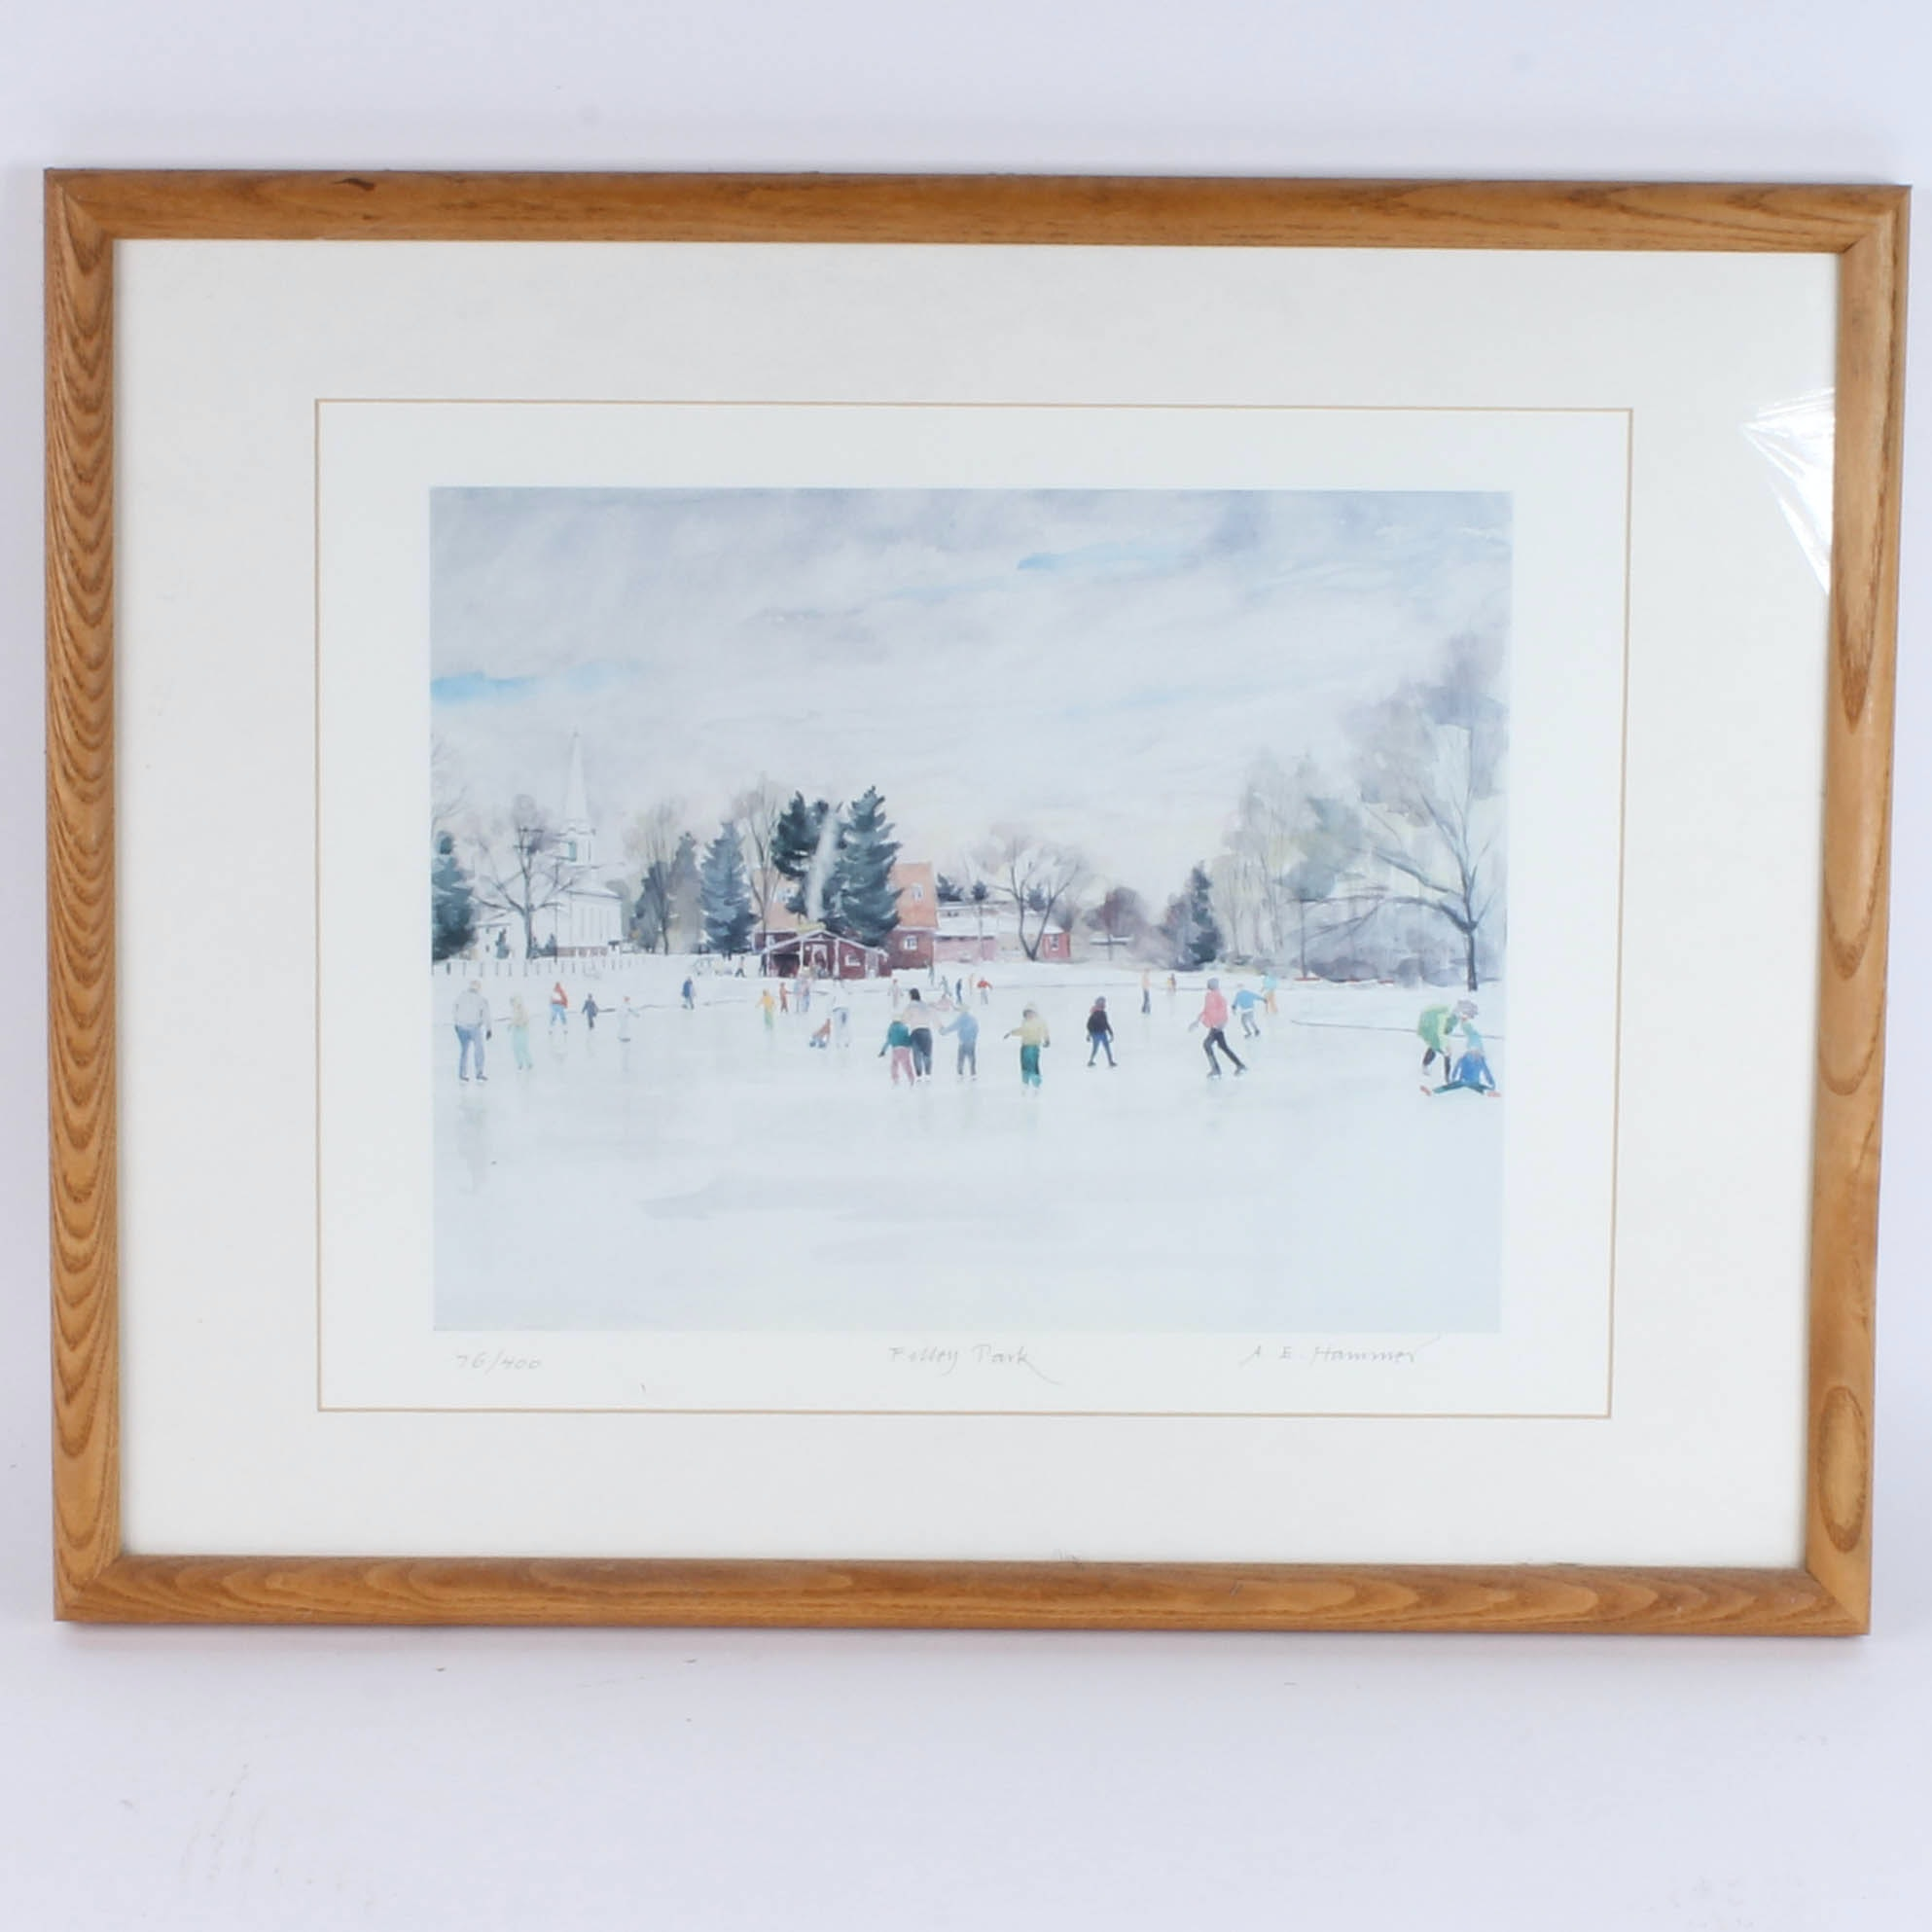 "A. E. Hammer Signed Limited Edition Print ""Filley Park"""